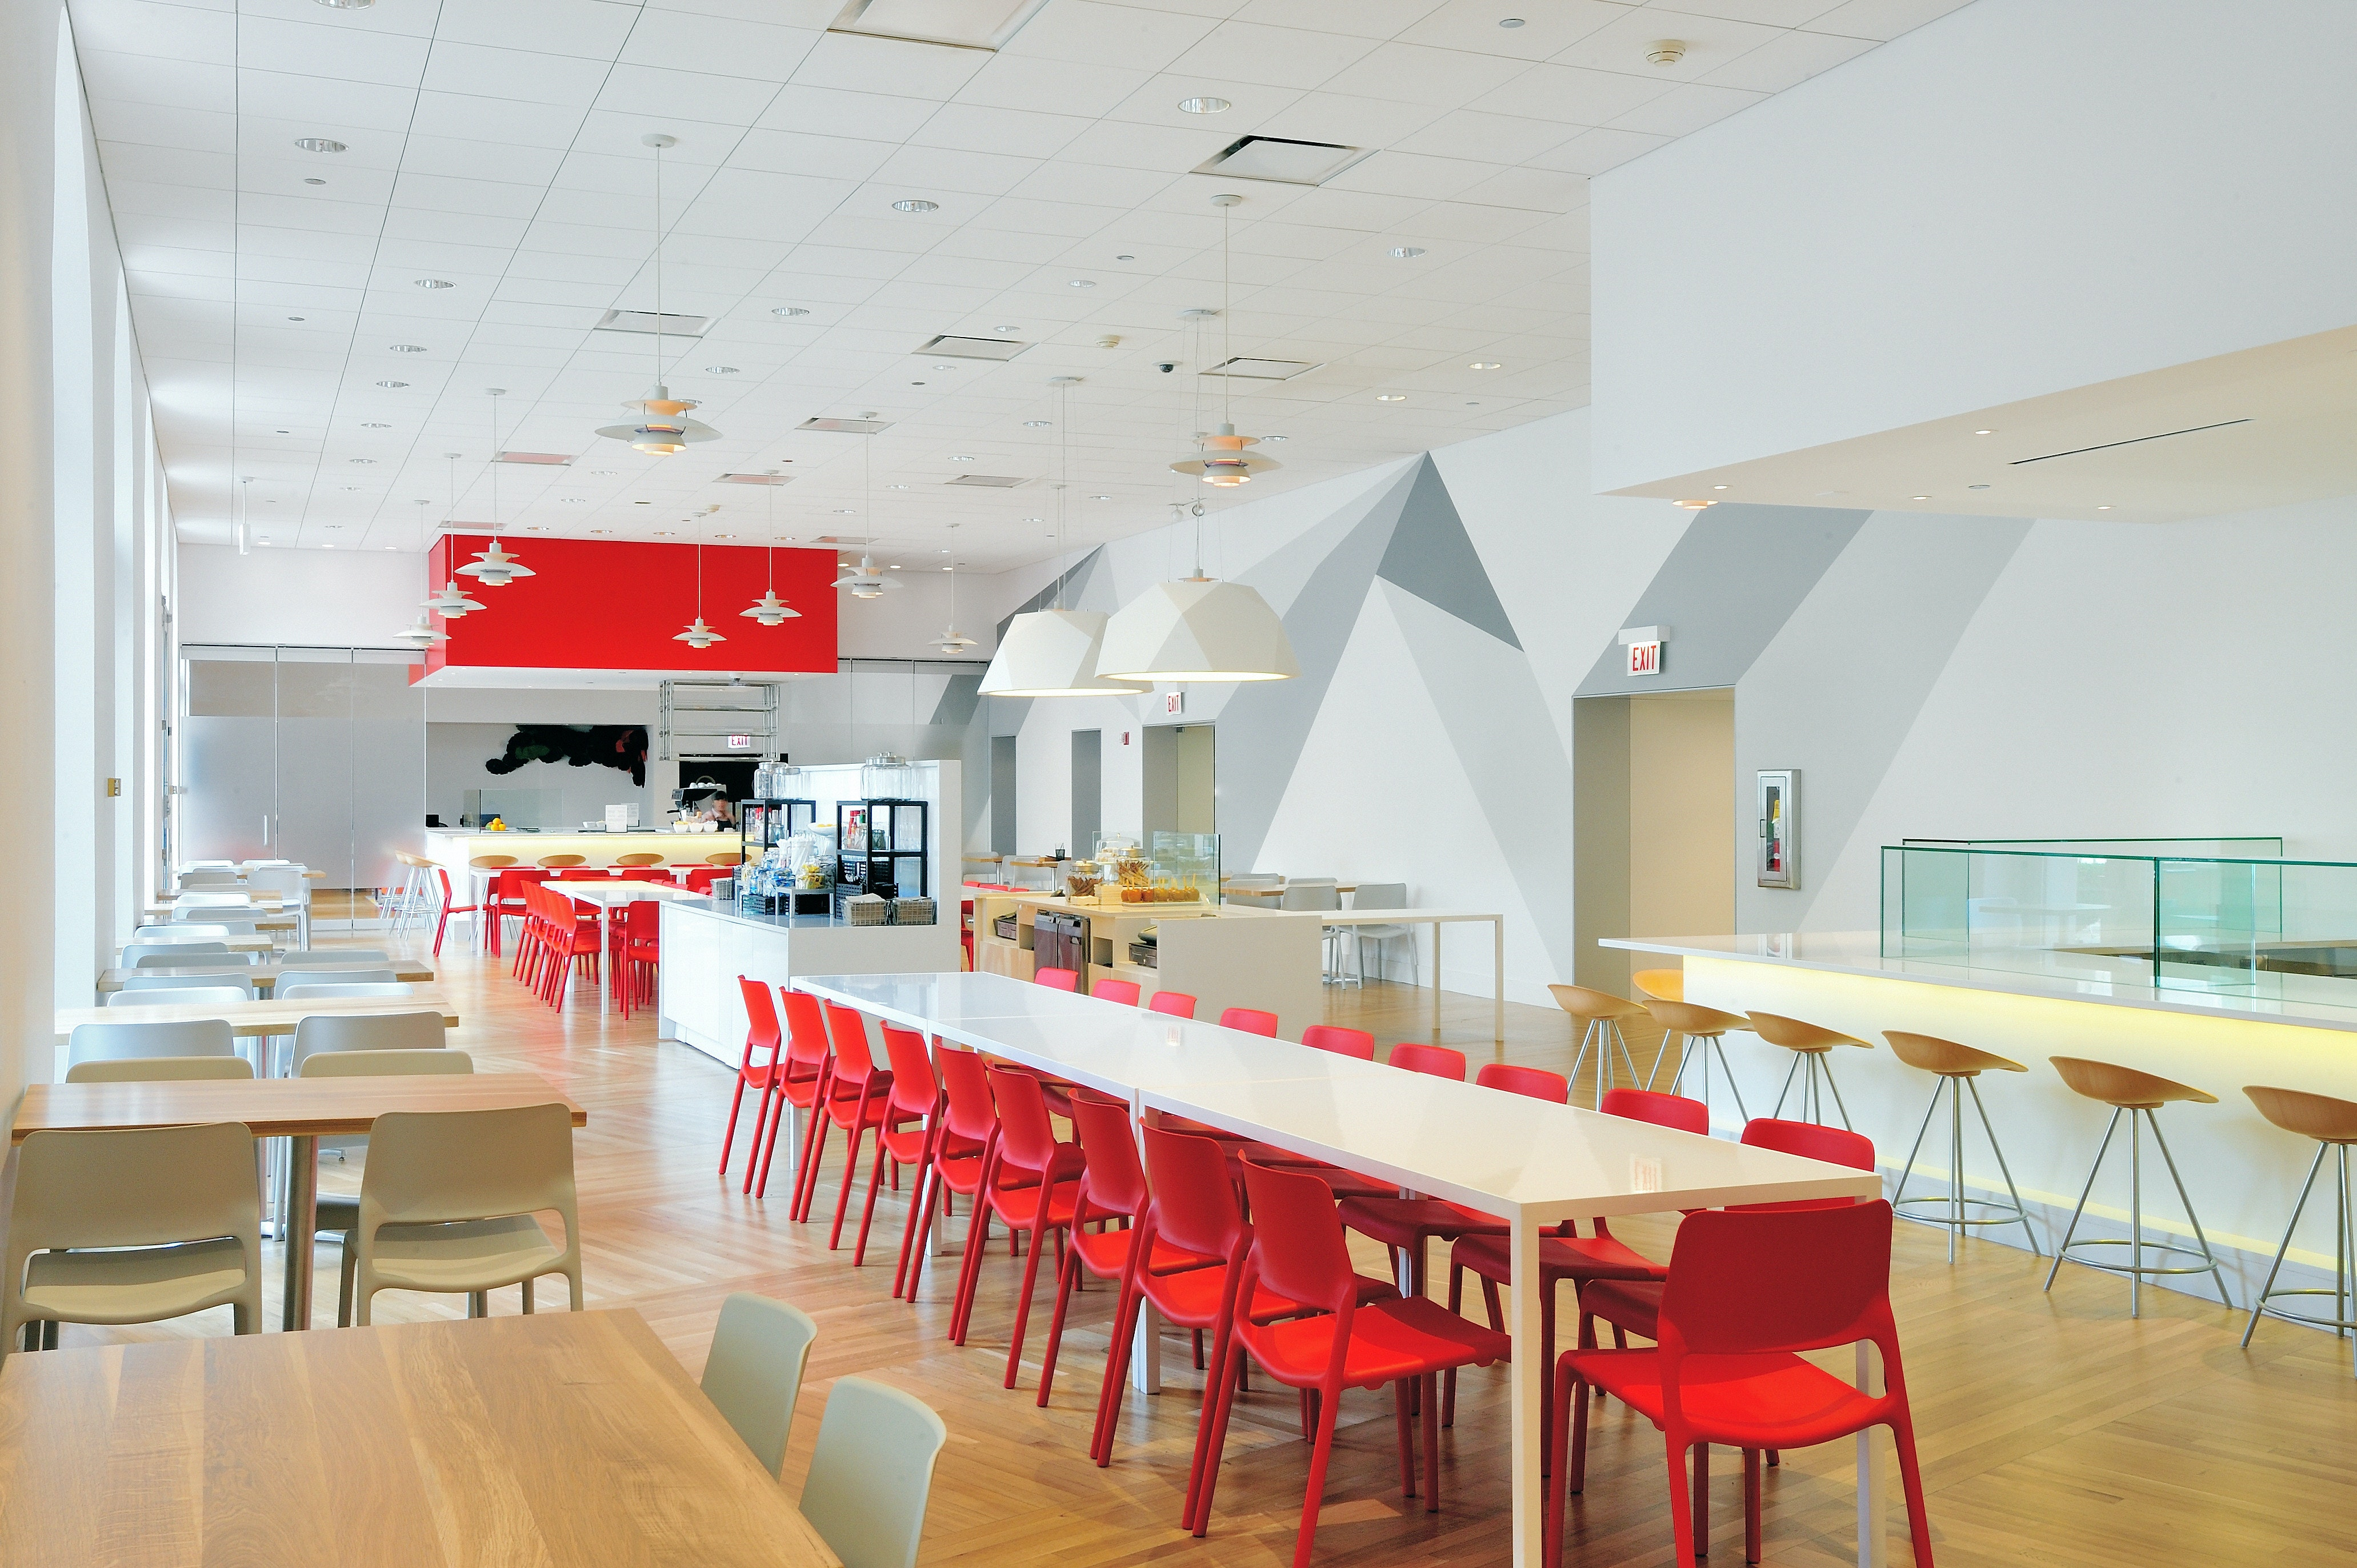 A long table with red chairs in a white room